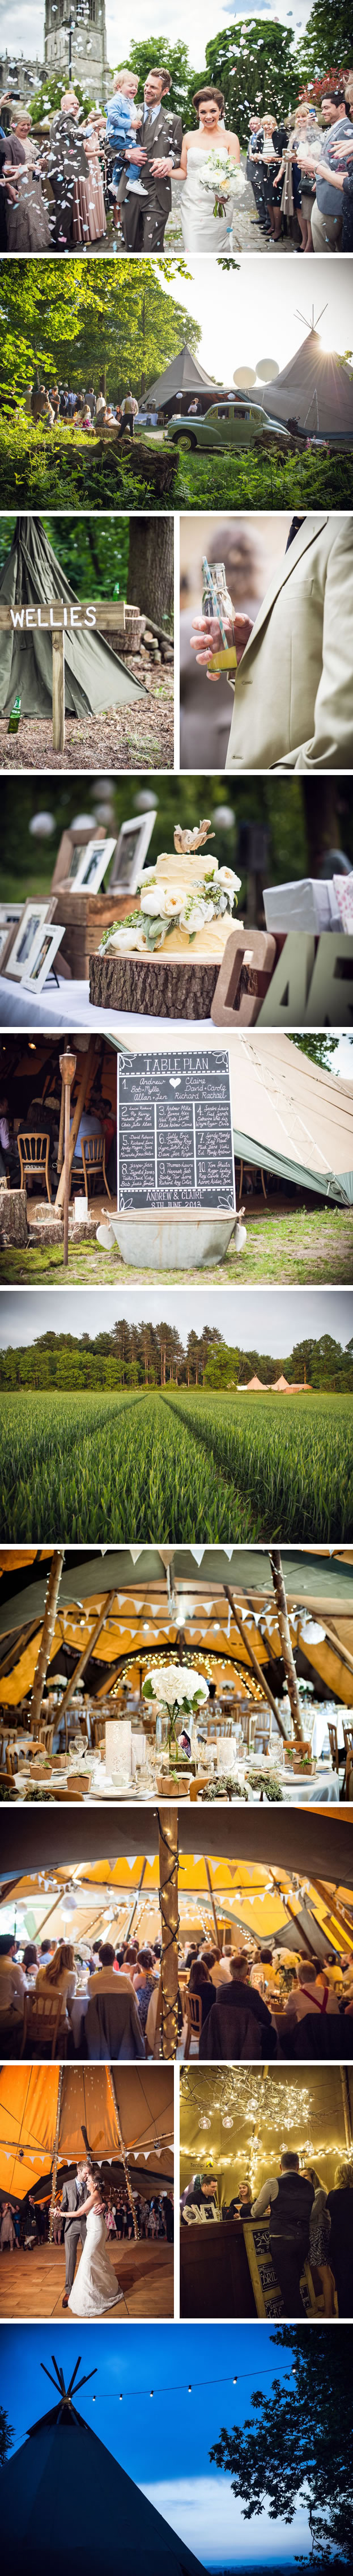 Claire & Andrew PapaKata Teepee Wedding at Hodsock Priory, Nottinghamshire